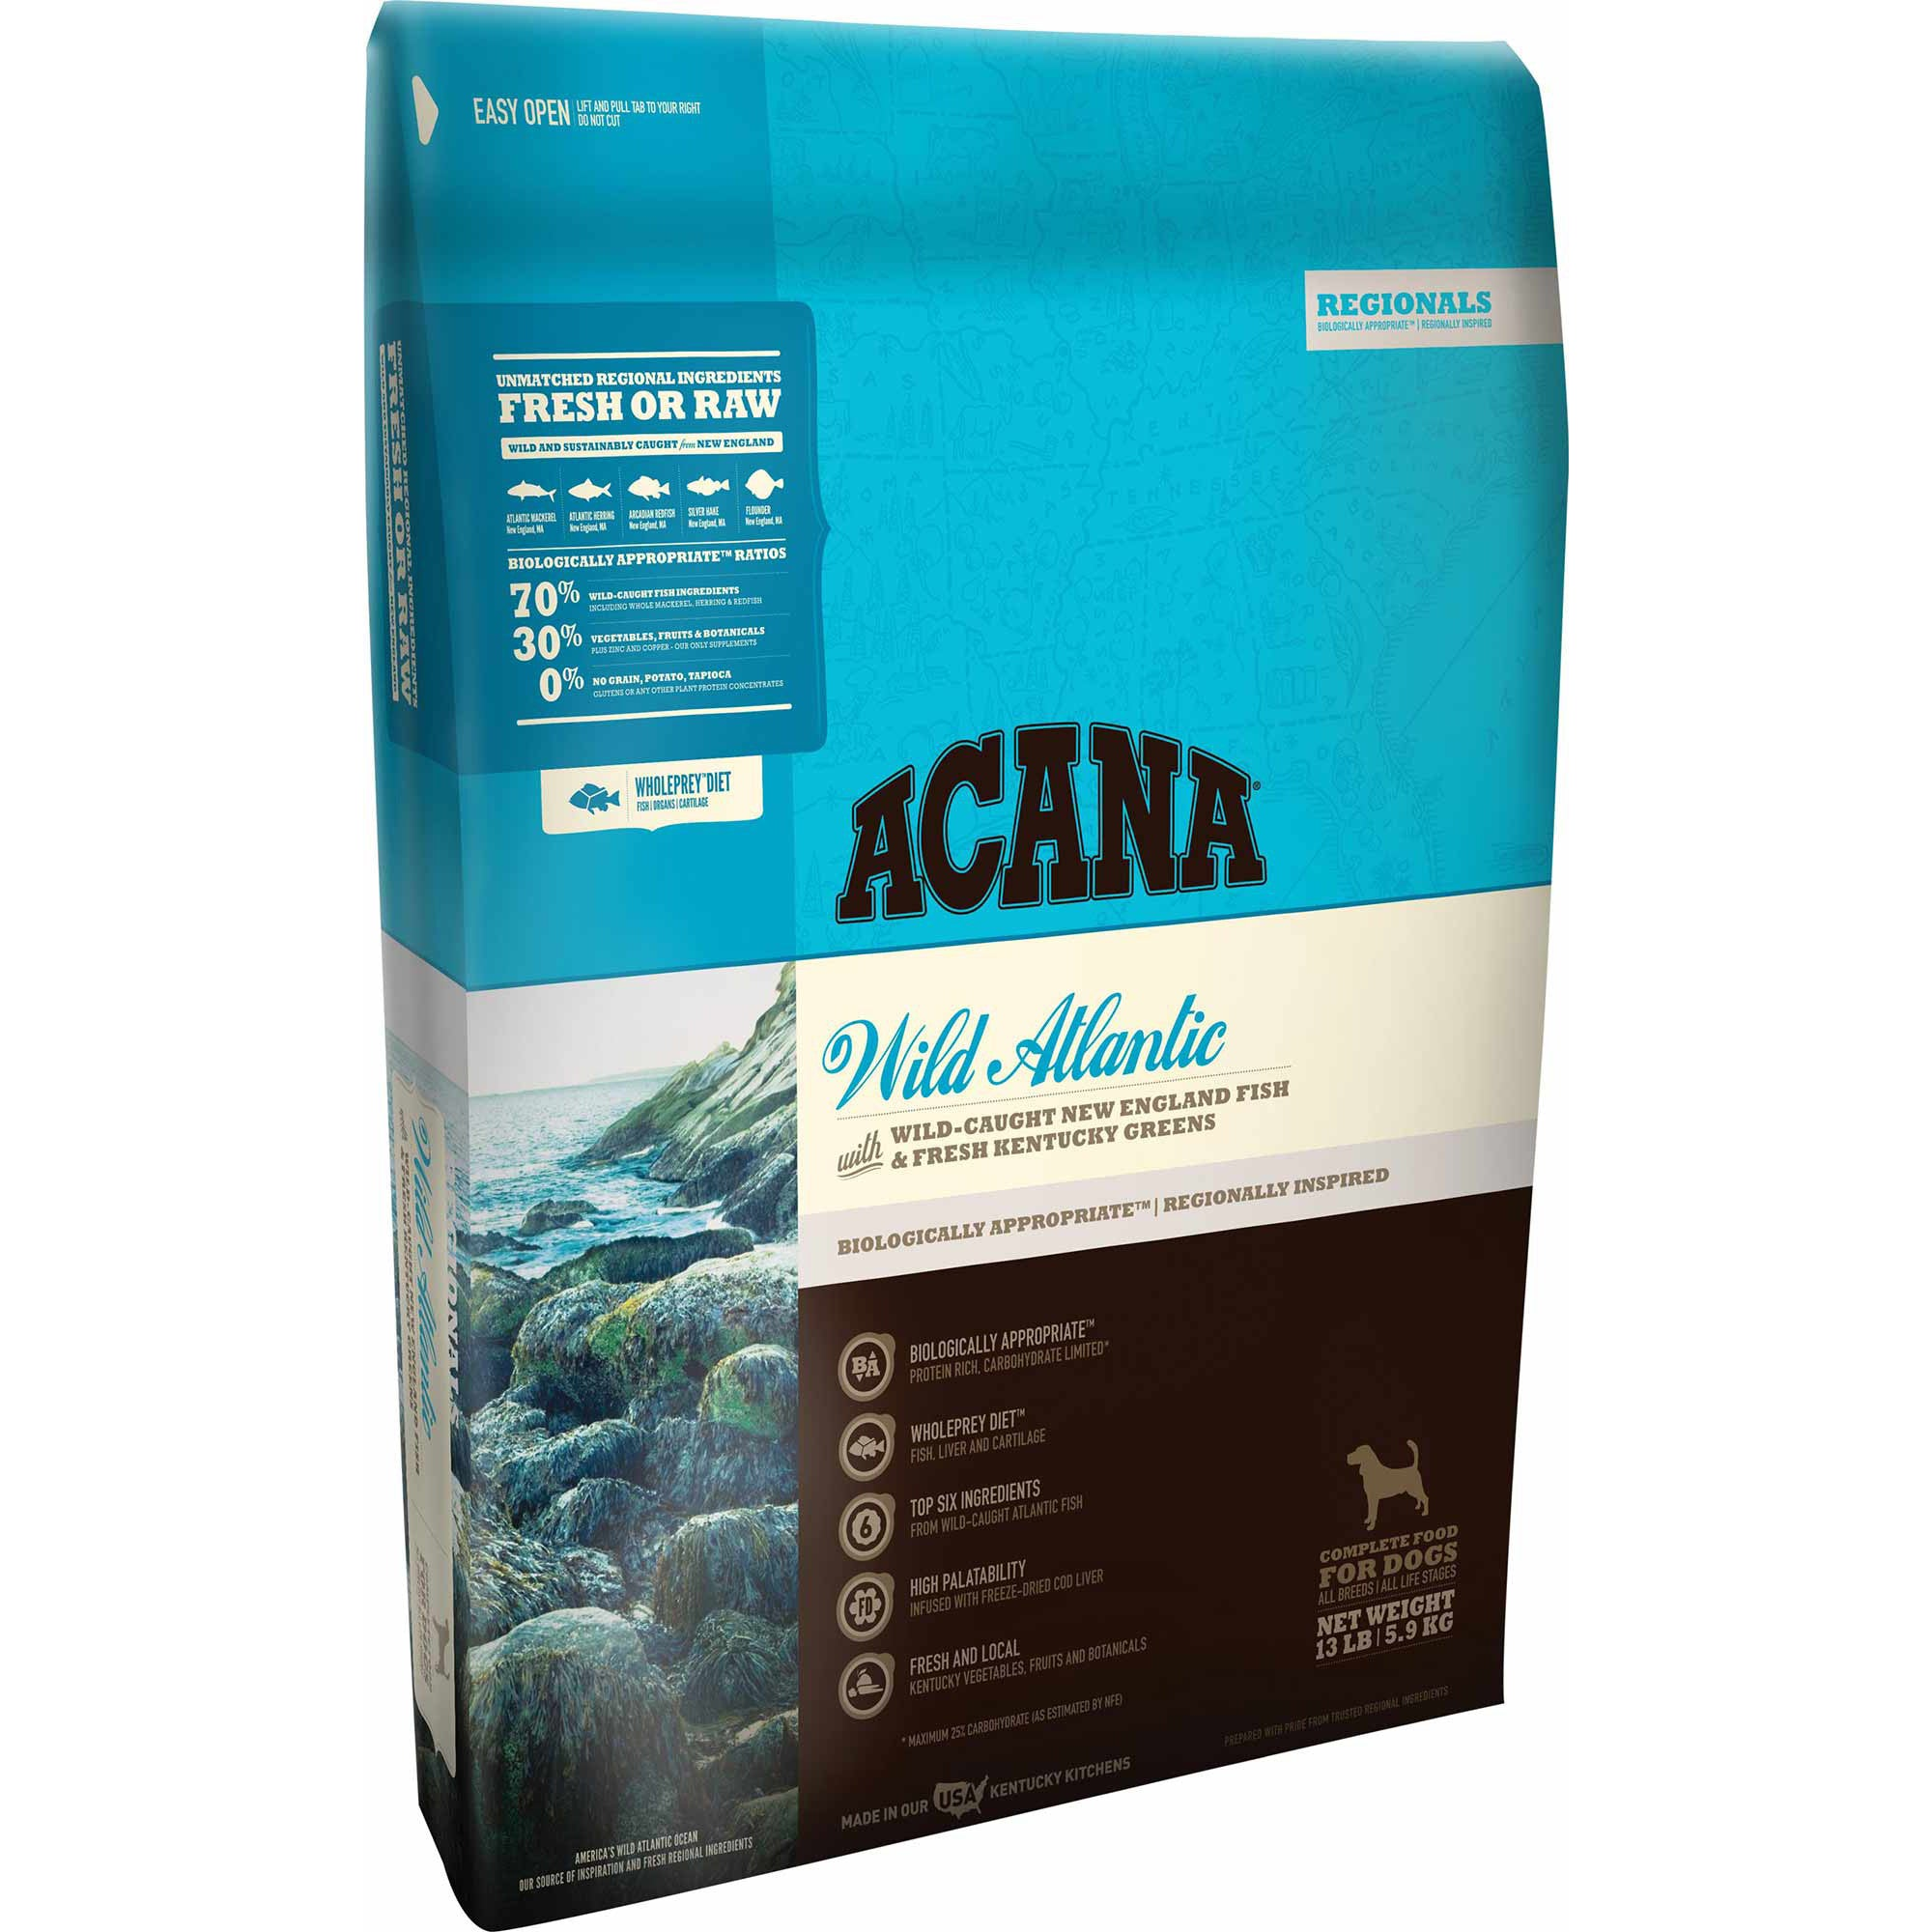 Acana Regionals Wild Atlantic for Dogs (Grain-Free)